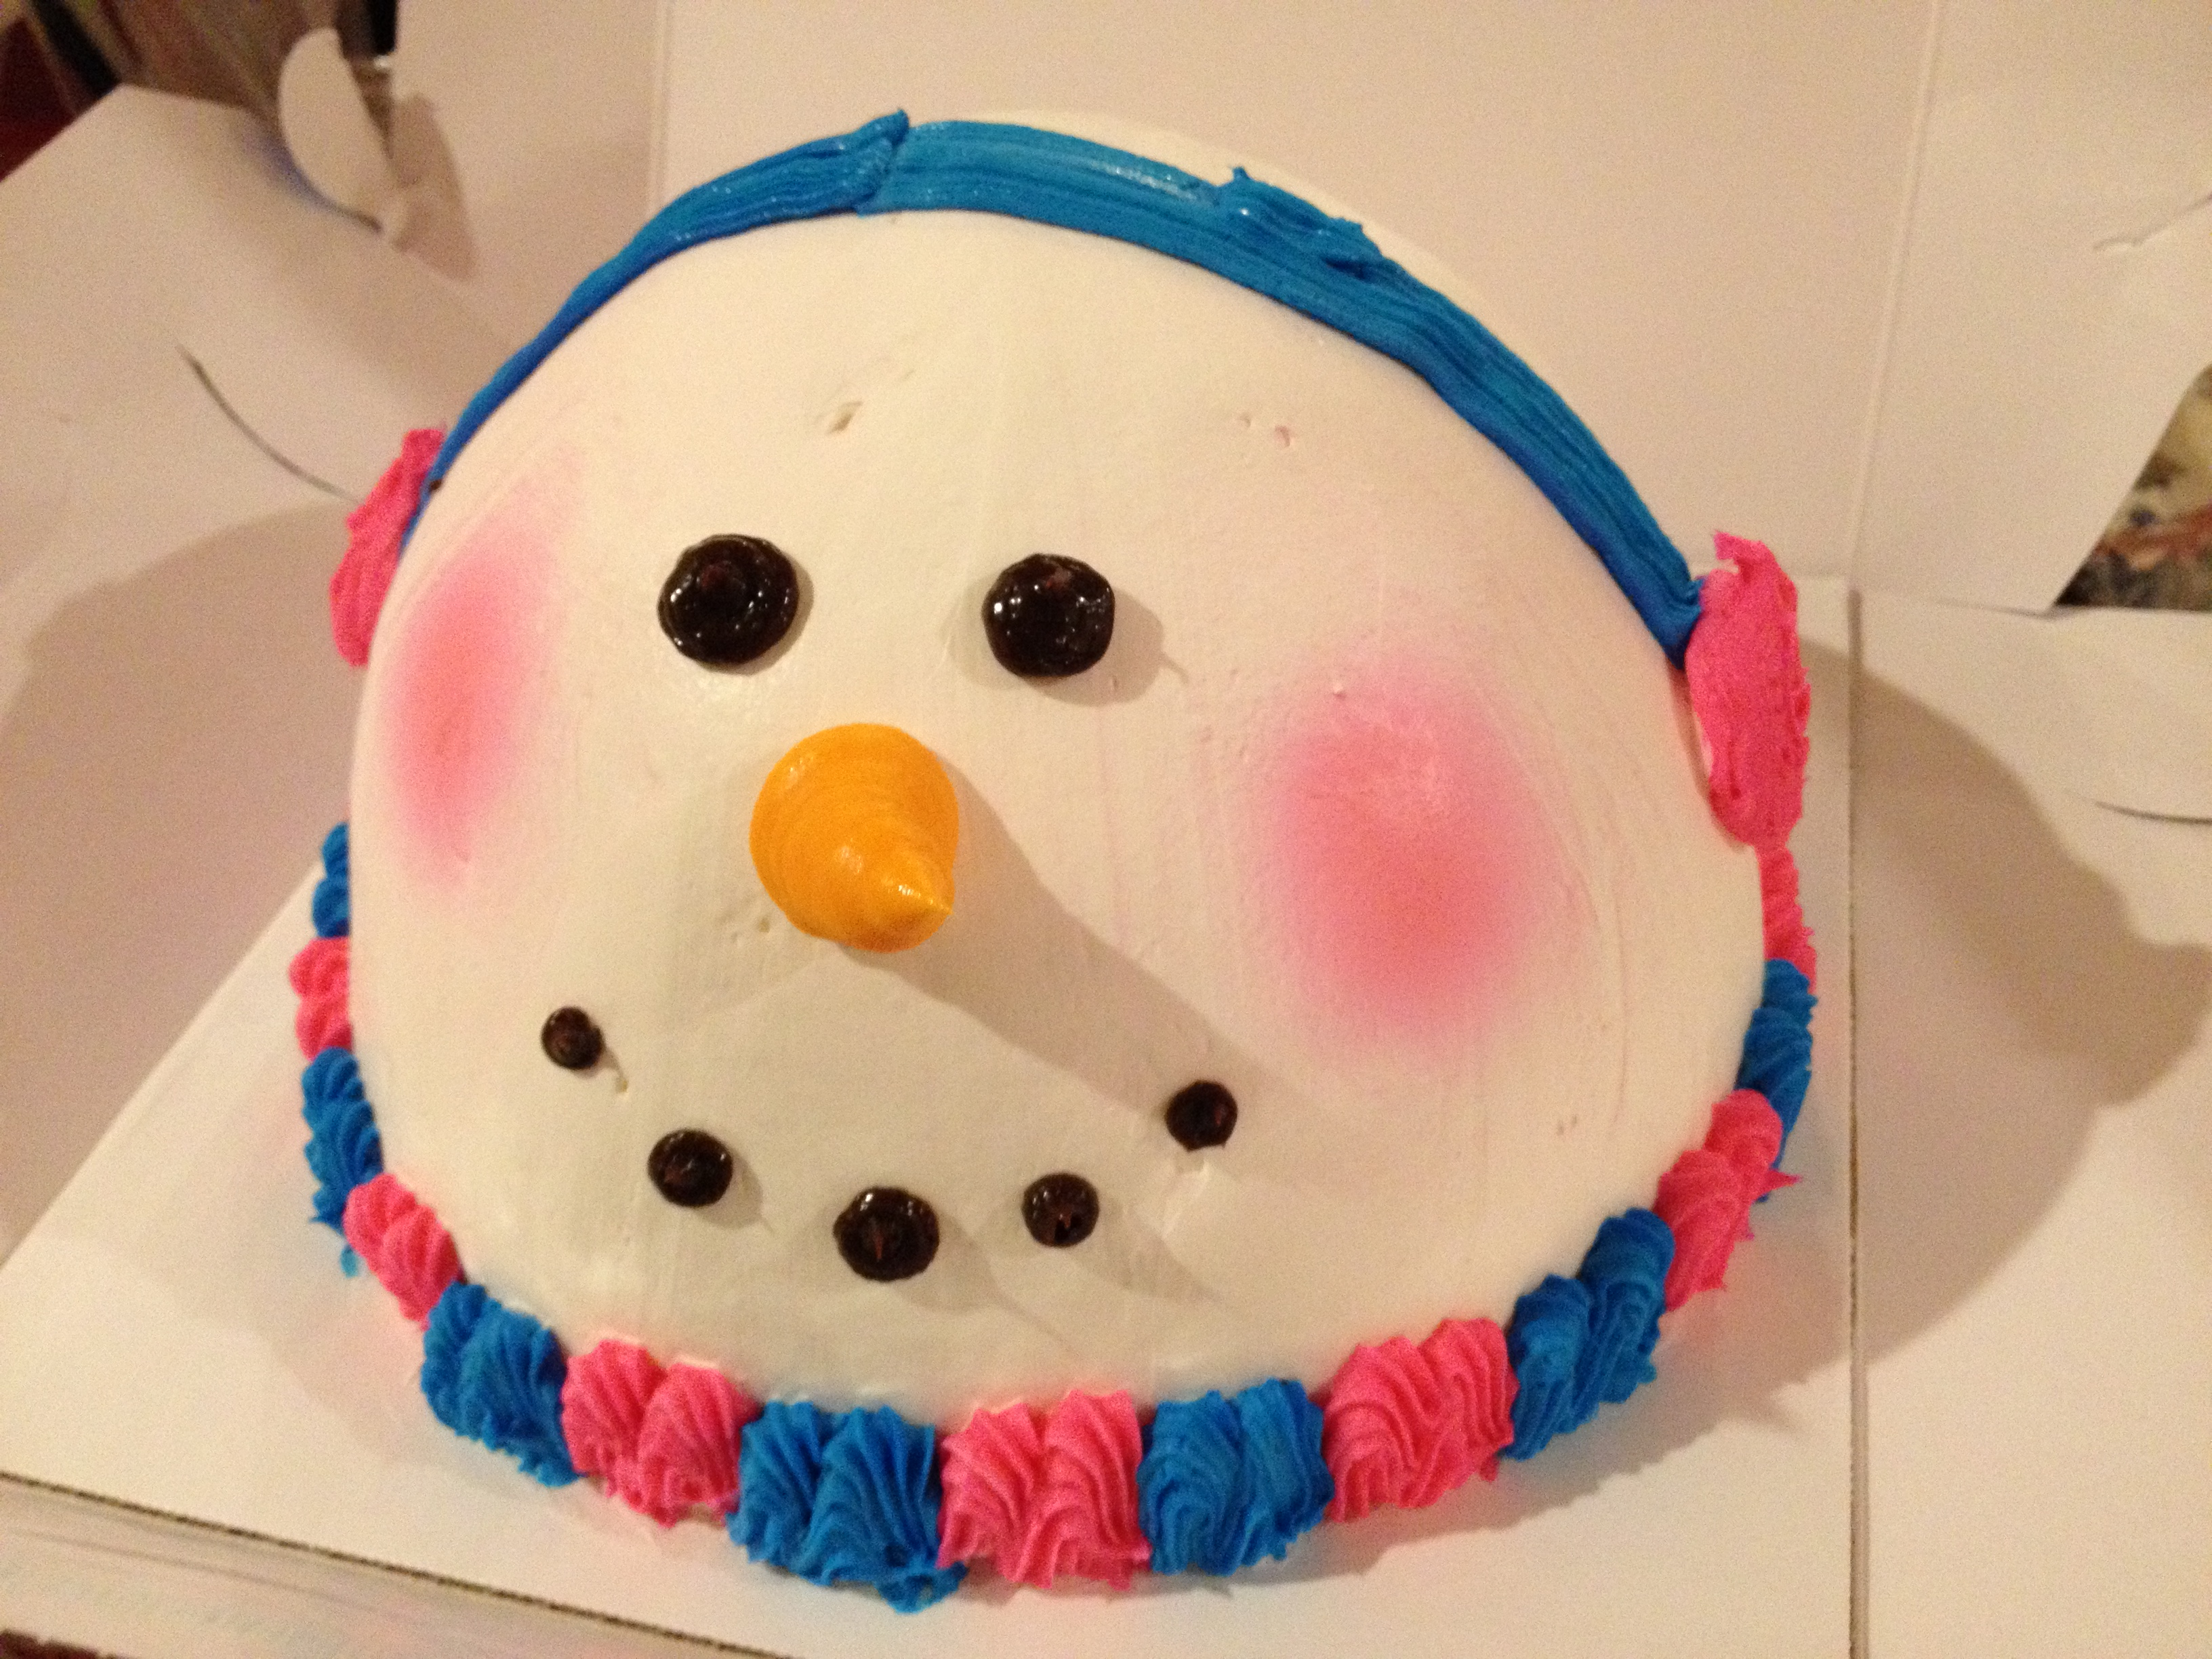 Baskin Robbins Holiday Cakes